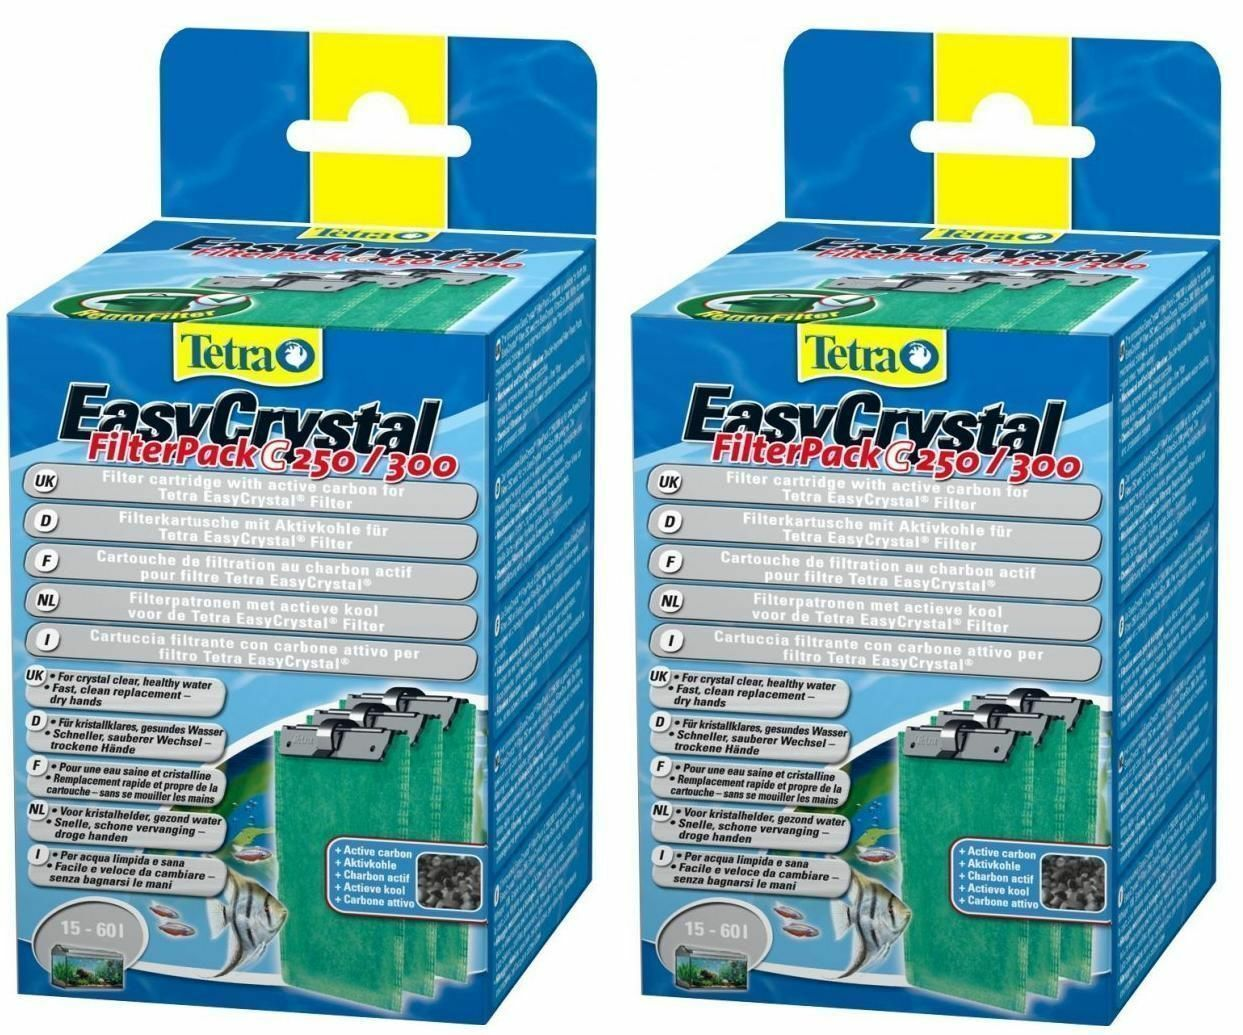 Tetra EasyCrystal Filter Pack C 250/300 with Activated Carbon*Tetratec